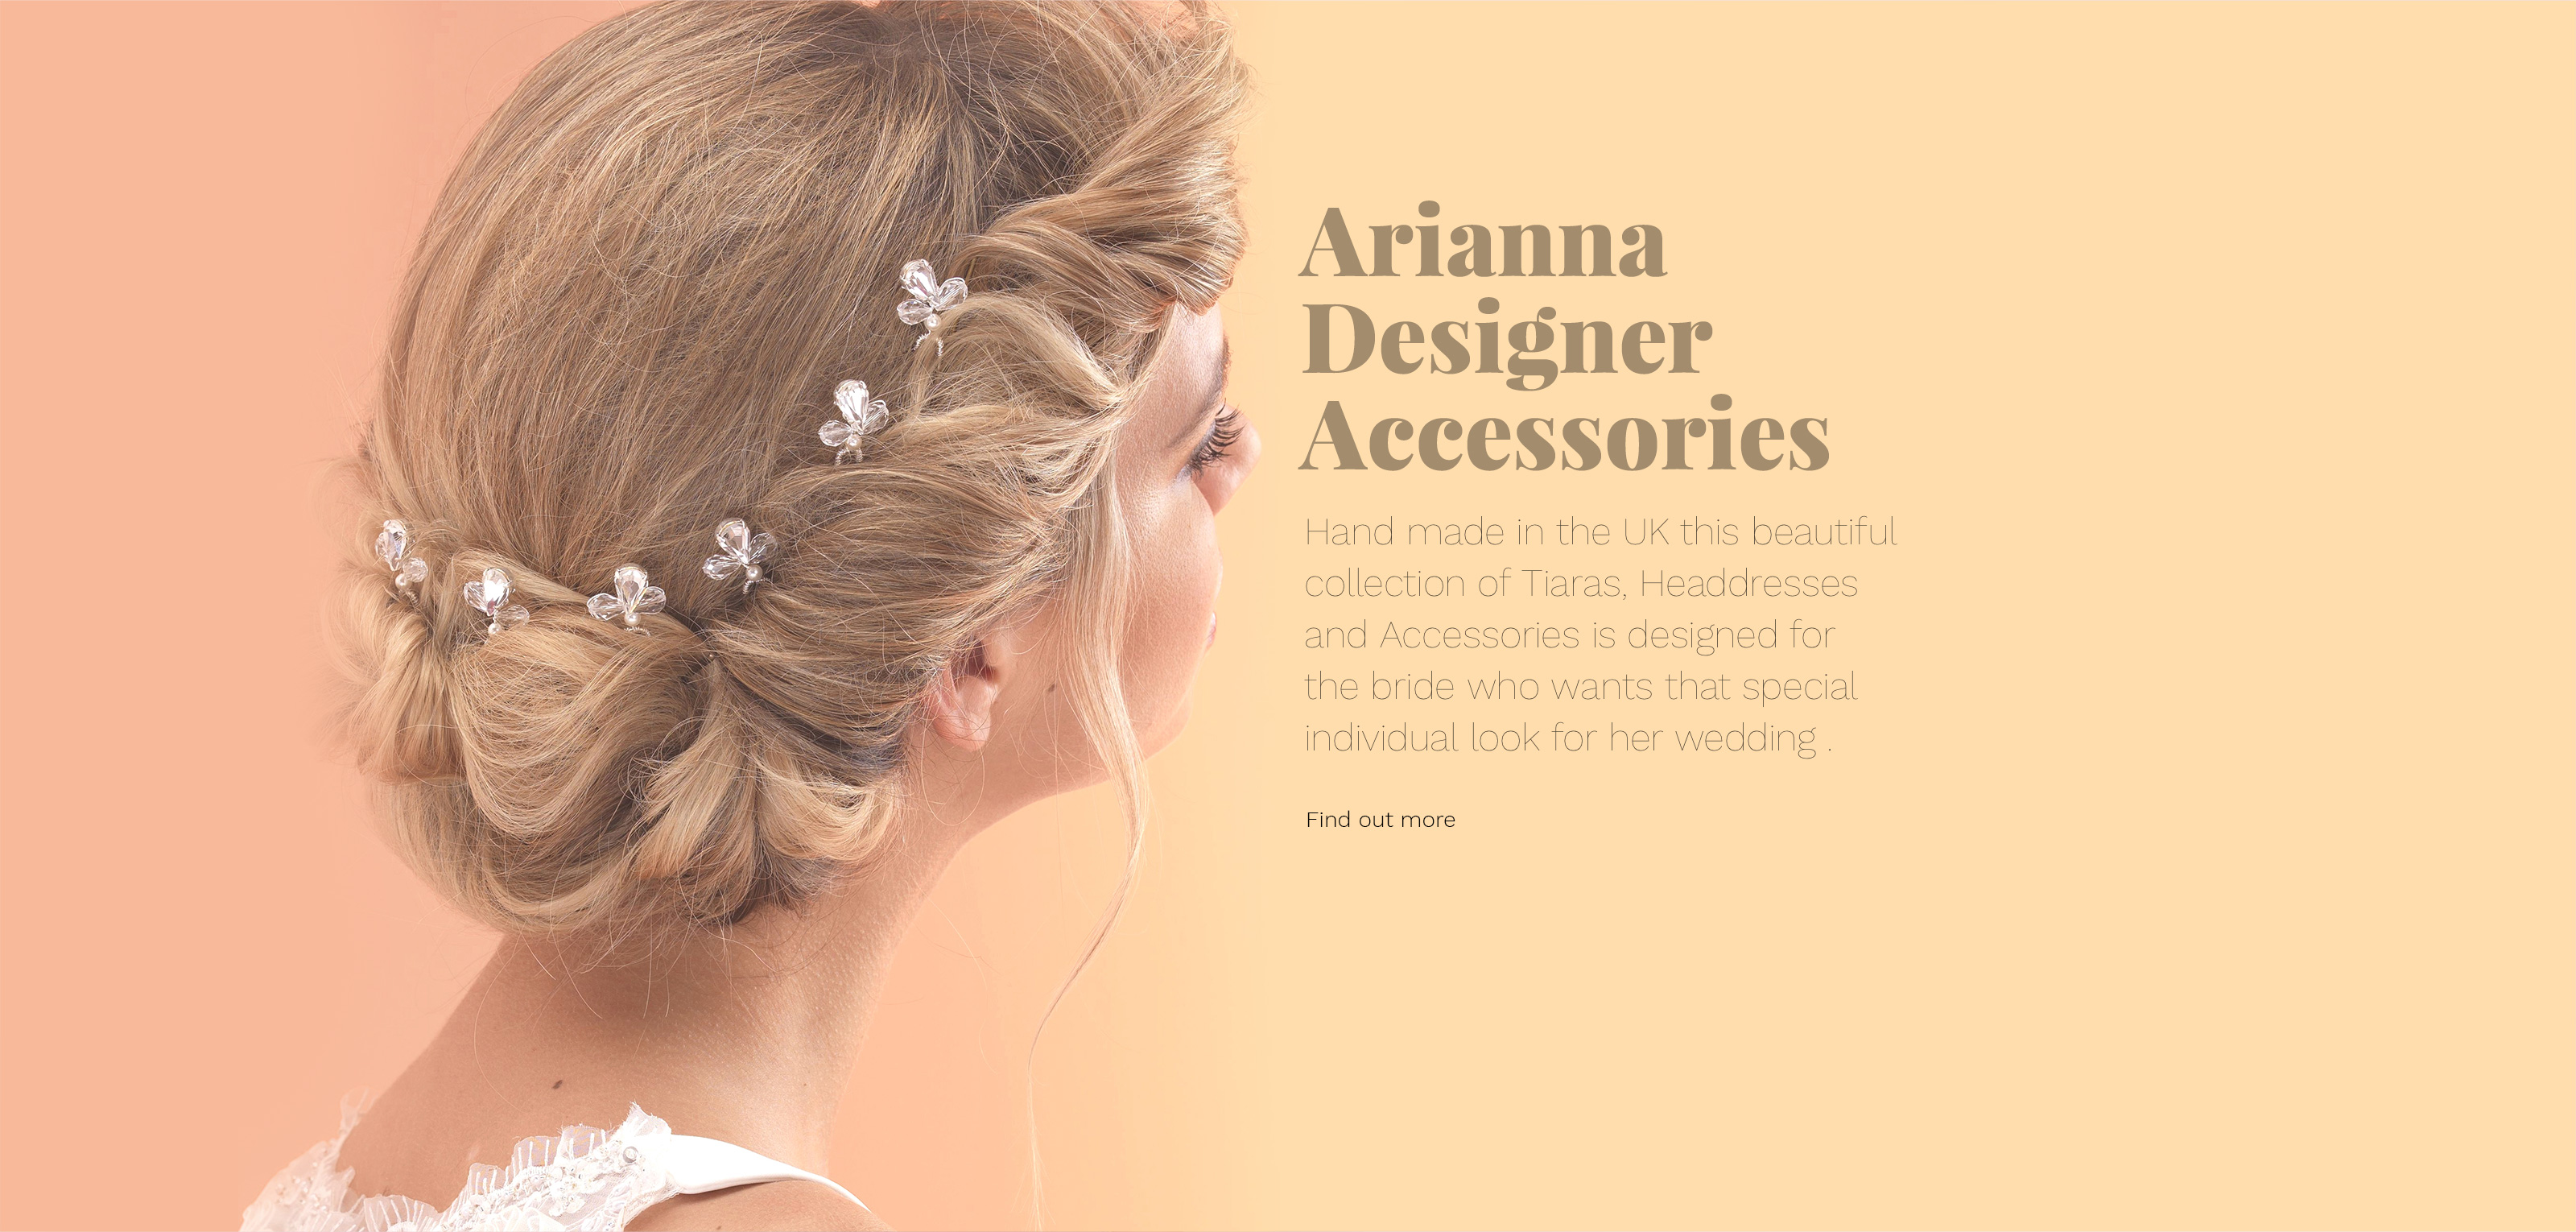 Arianna Designer Accessories